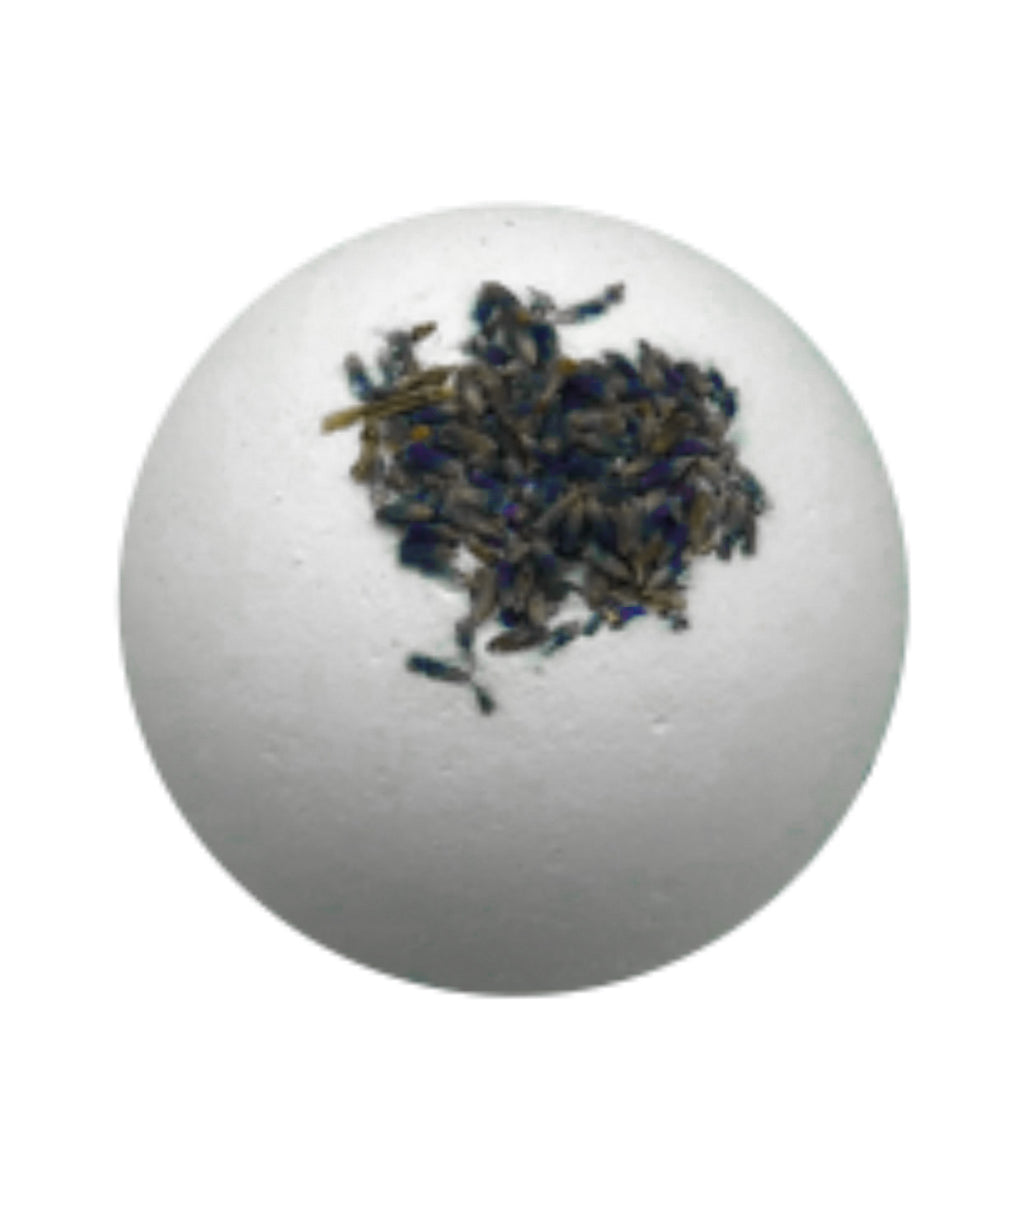 Relaxing - Lavender + Dried Lavender Buds Organic Bath Bombs